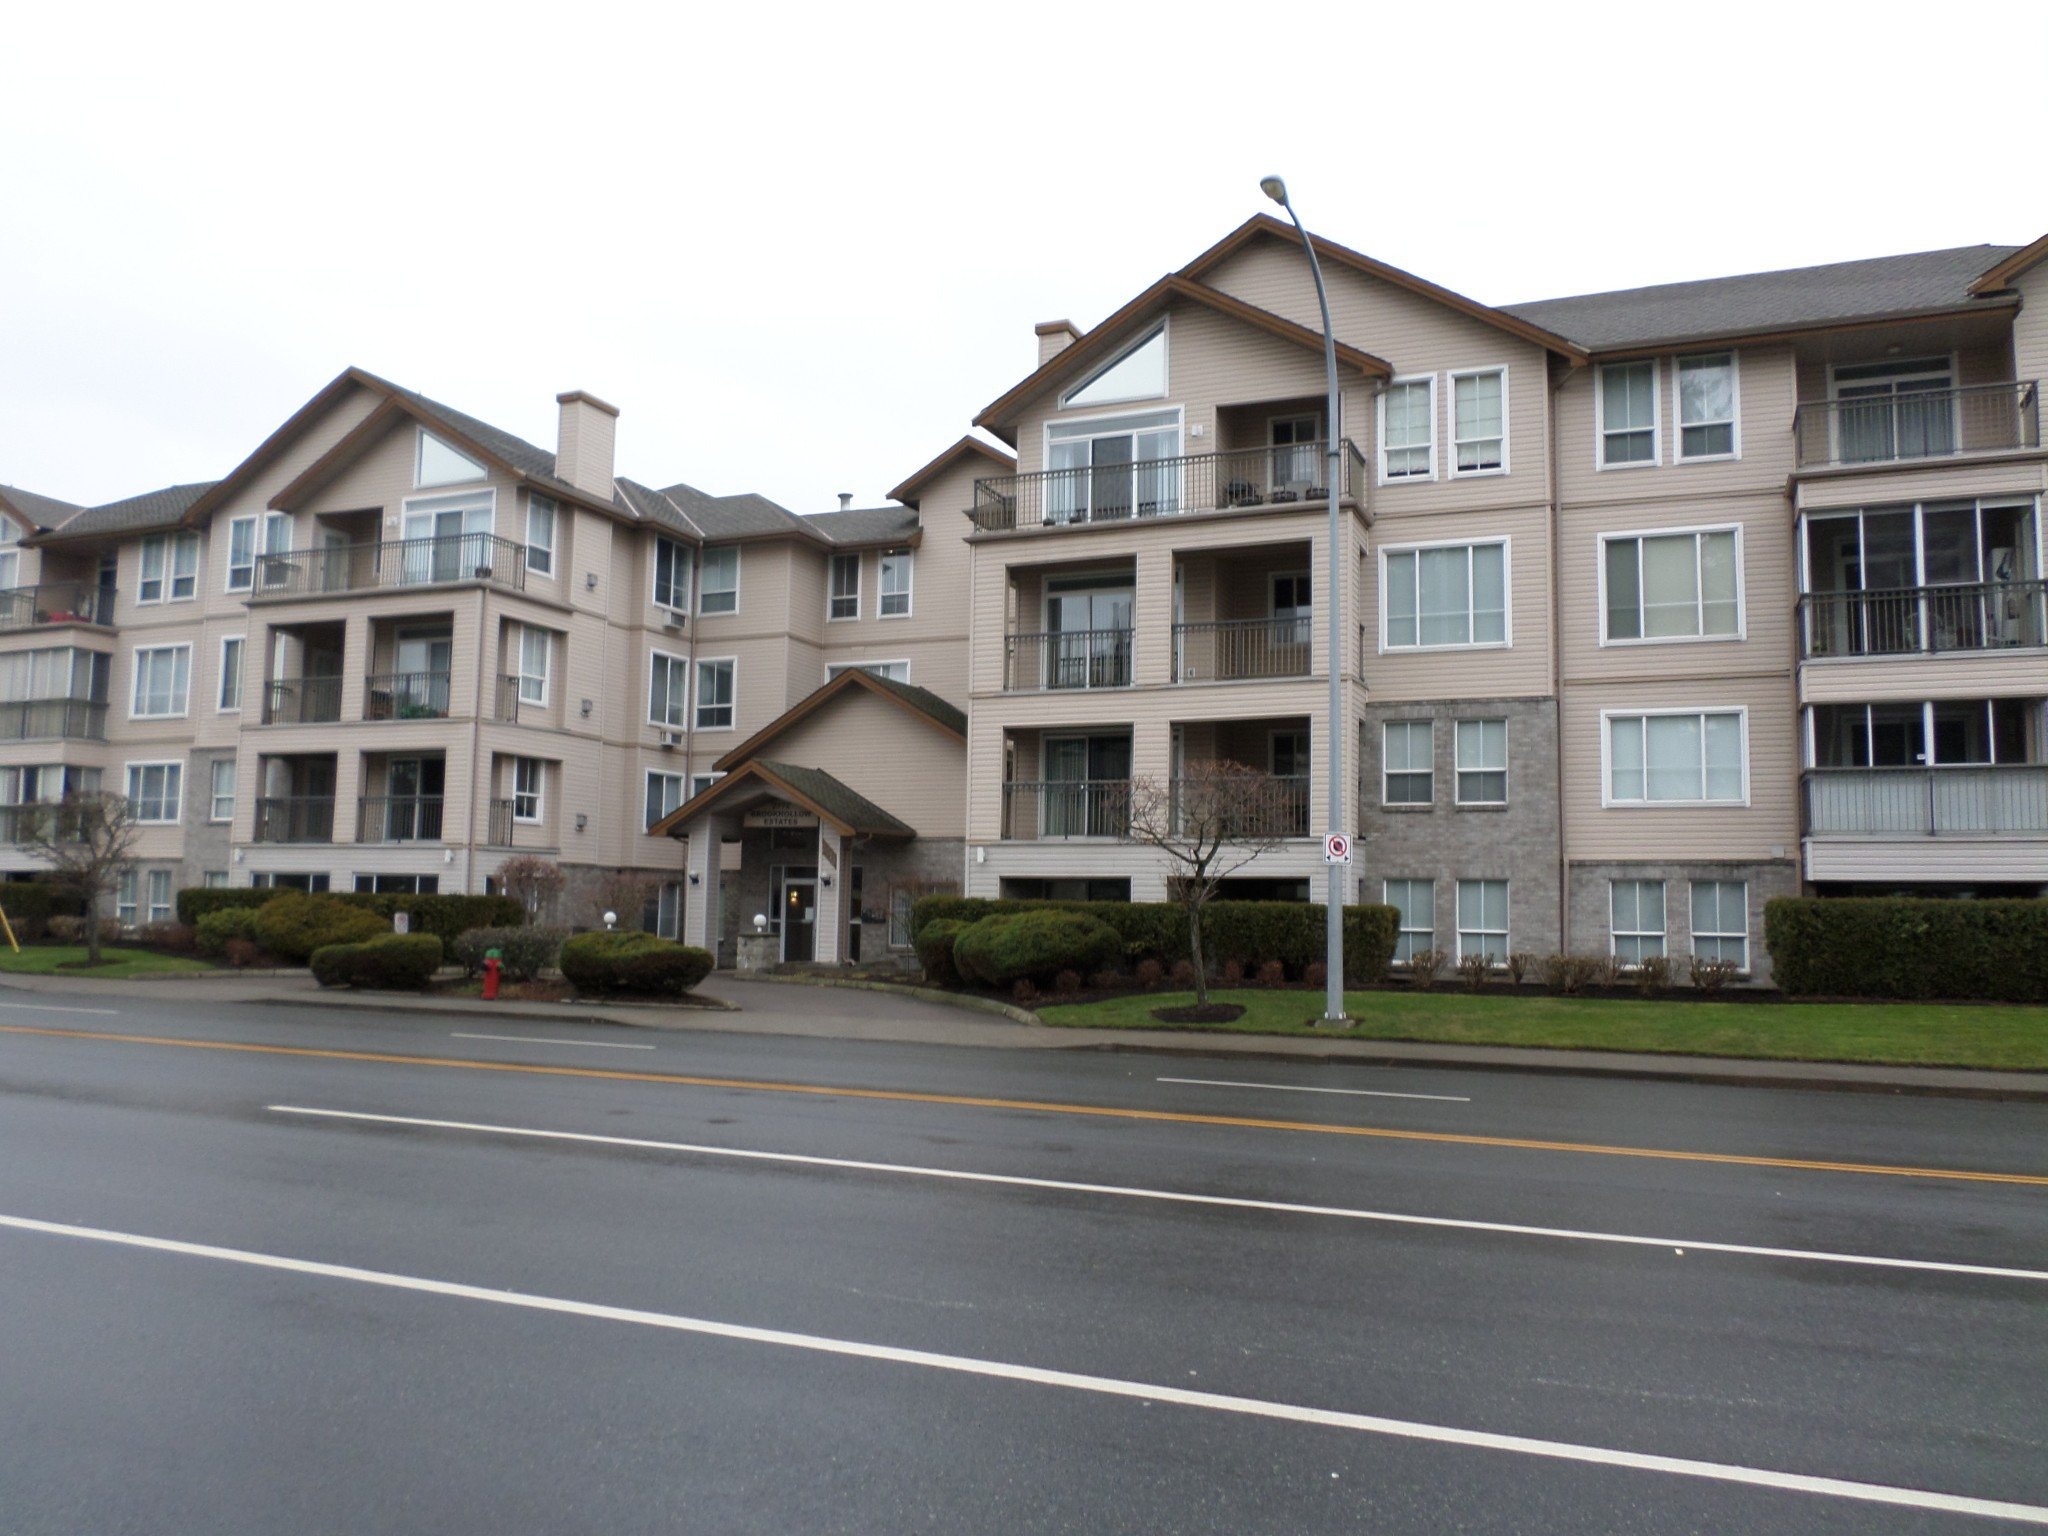 Main Photo: 301 2772 Clearbrook Road in Abbotsford: Abbotsford West Condo for sale : MLS®# R2233339